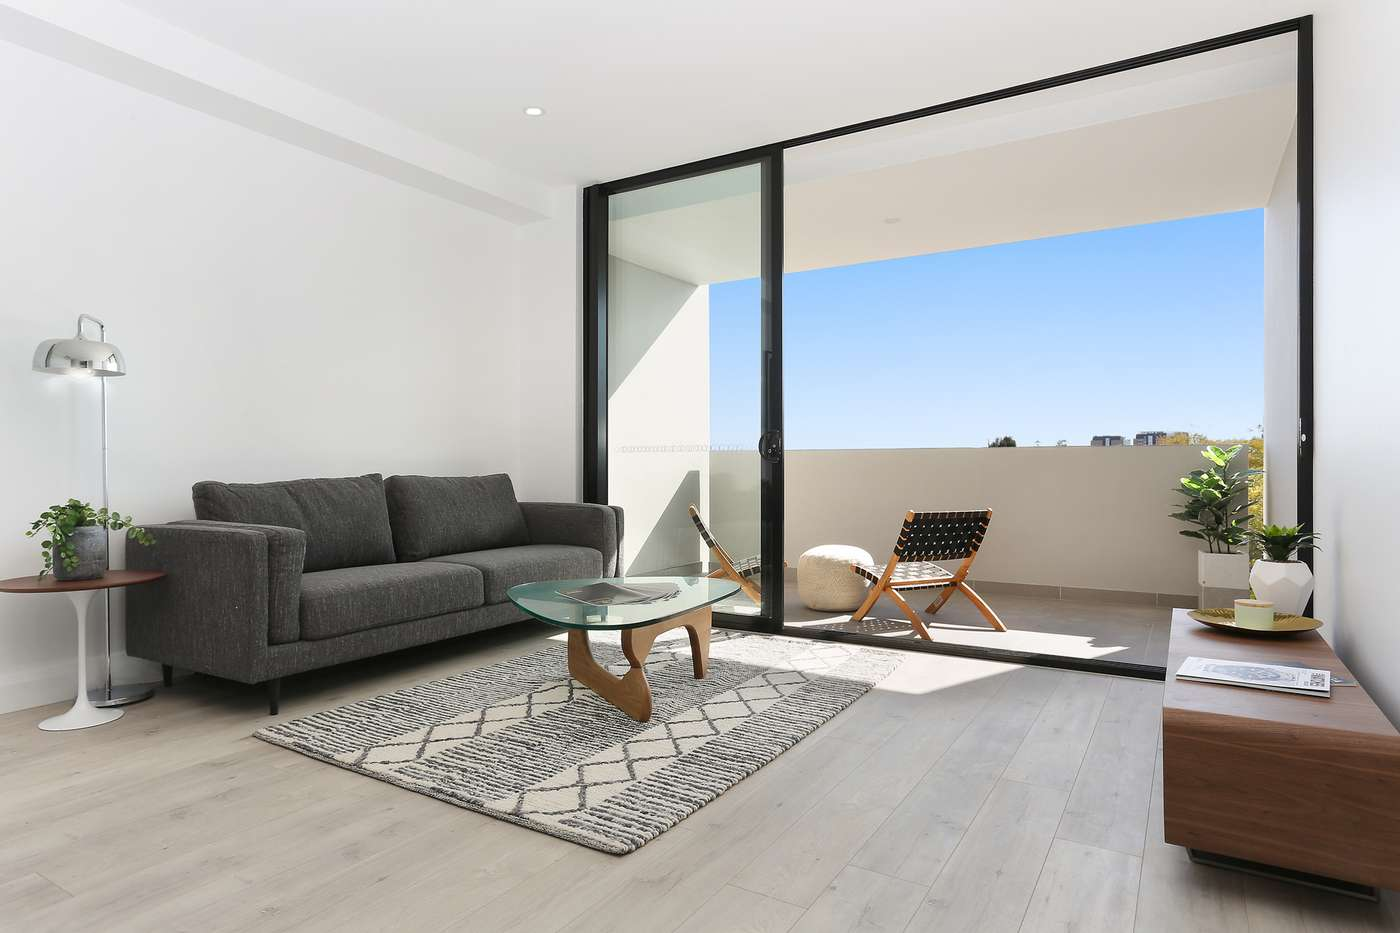 Main view of Homely apartment listing, 31/79-81 Liverpool Road, Burwood, NSW 2134